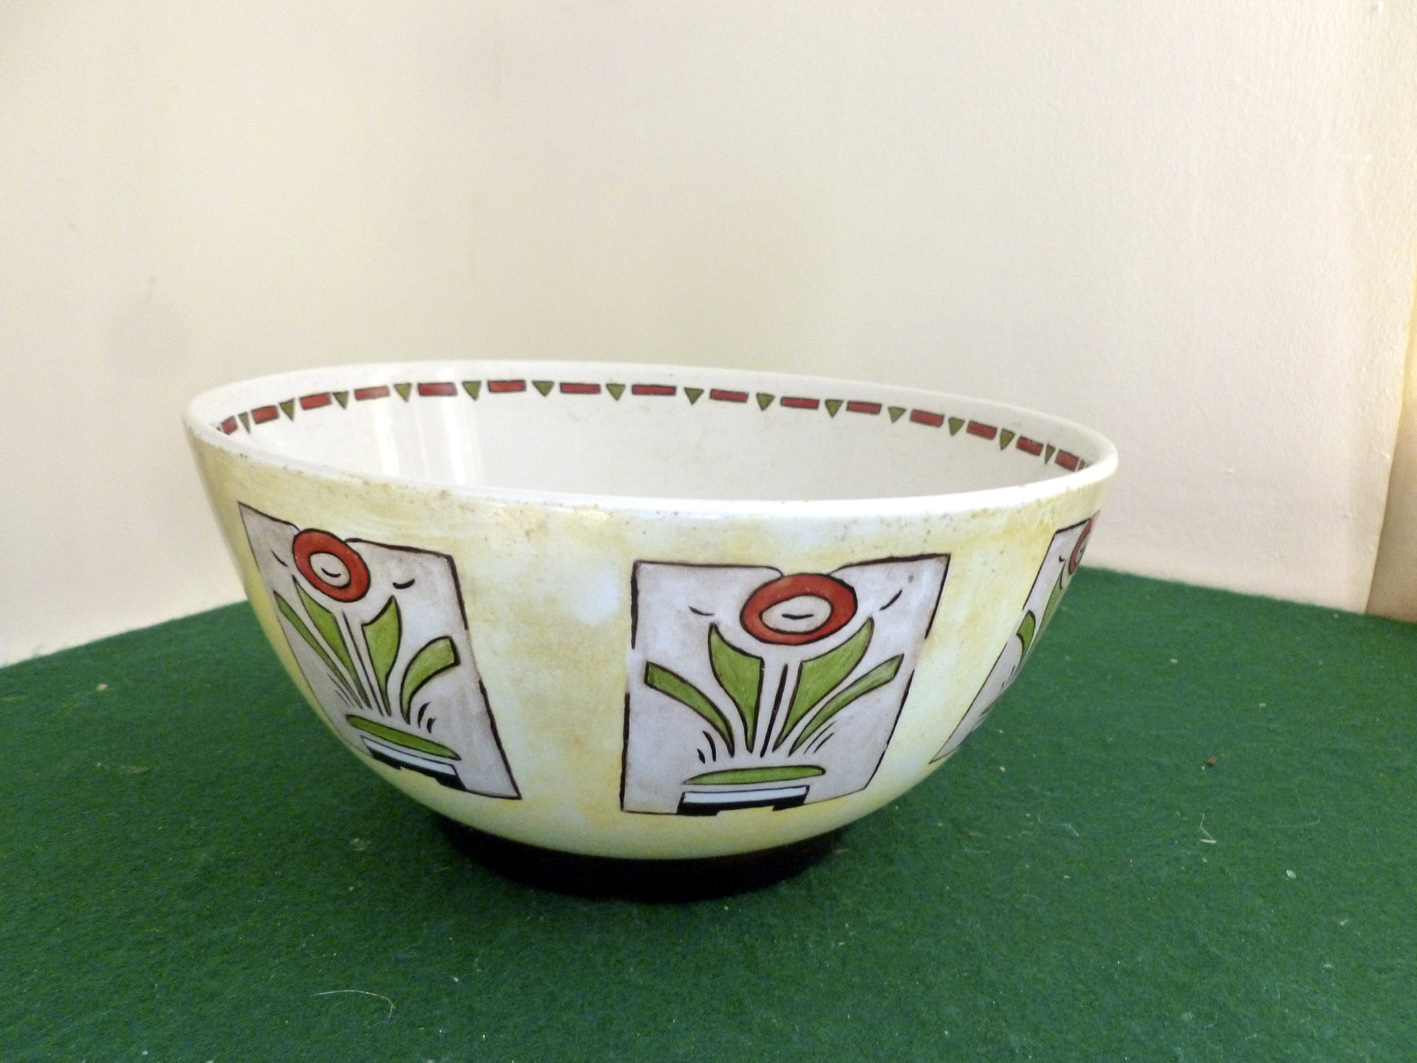 Excellent example of Art Deco Style in useful fruit bowl, creamy yellow background, black foot and decorated with geometric design of stylised flowers. Very trendy and in perfect